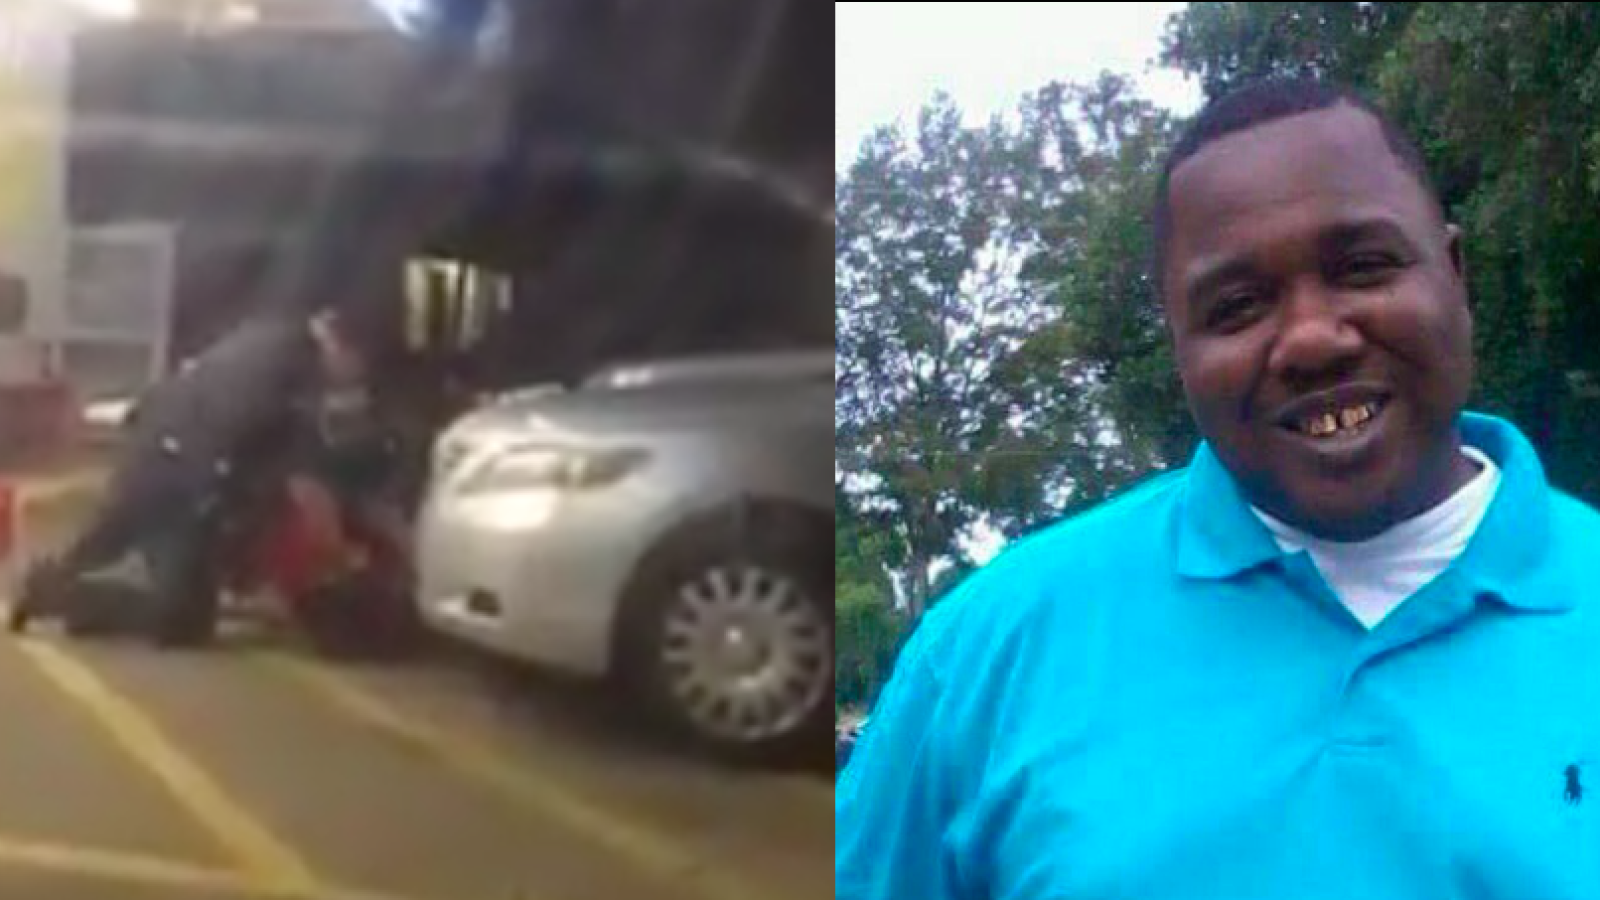 The Alton Sterling Shooting Video Was Recorded By Members Of An Anti-v